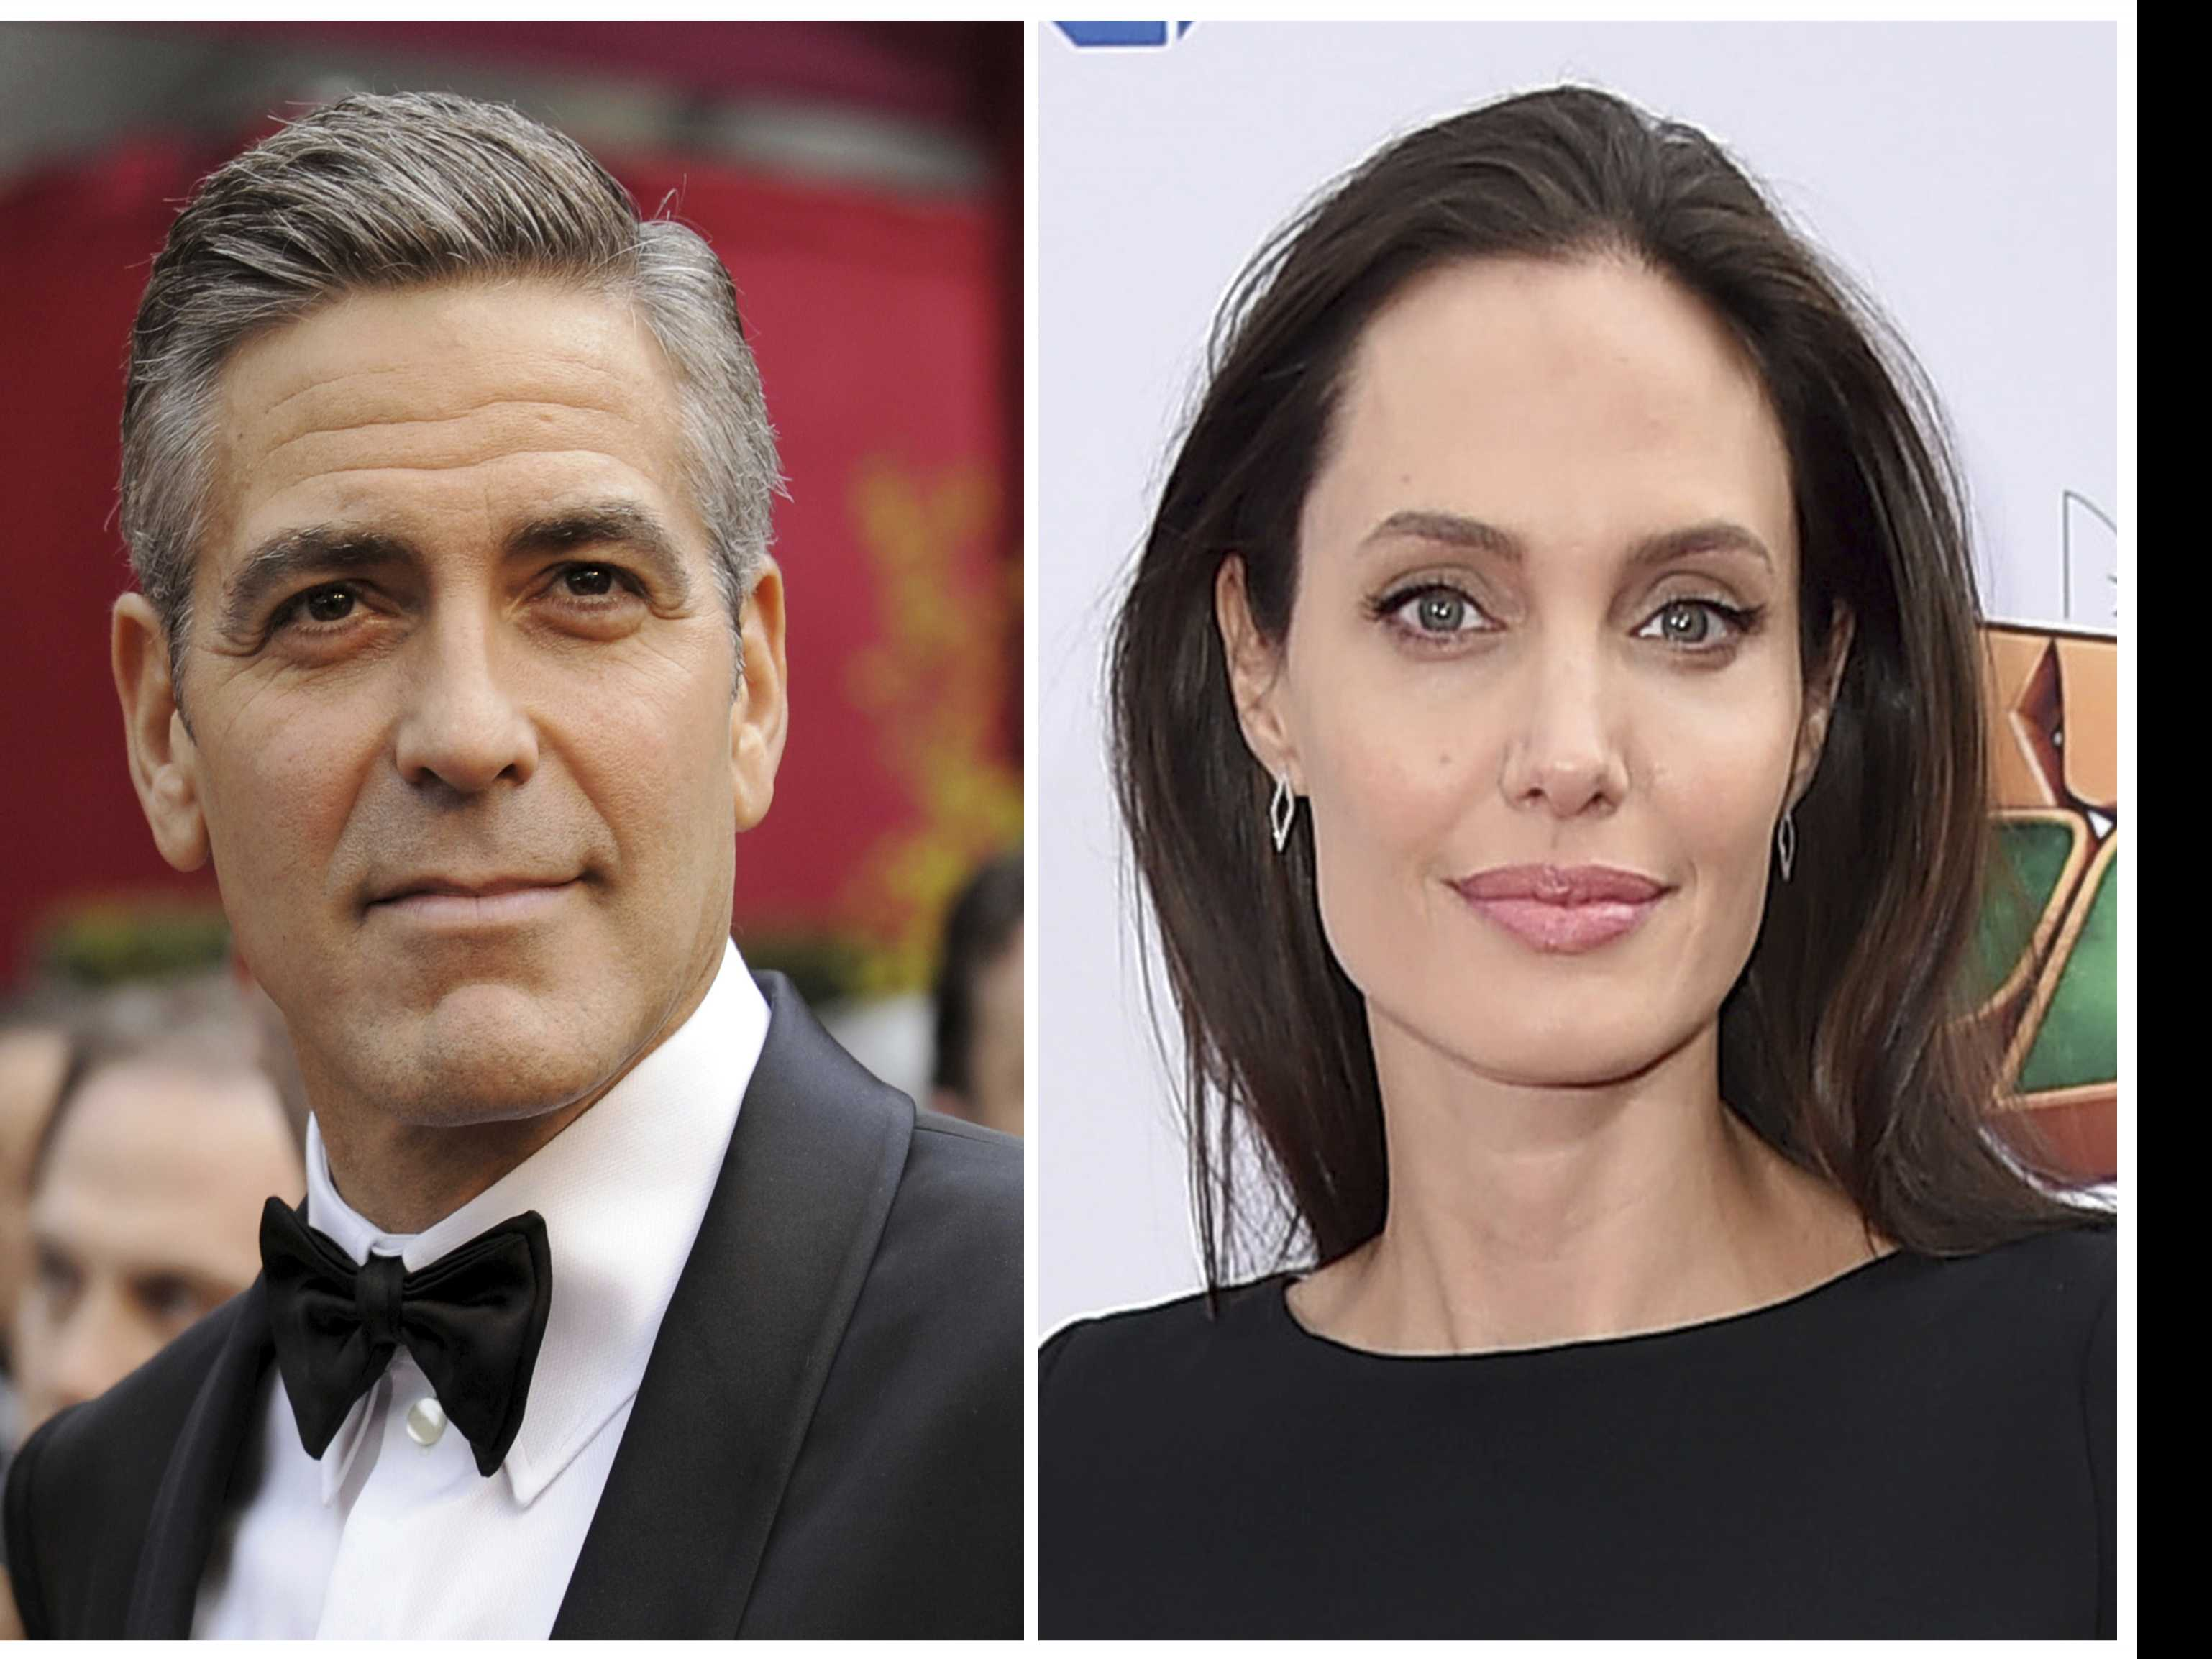 Films From Jolie, Clooney, Aronofsky Among TIFF Premieres